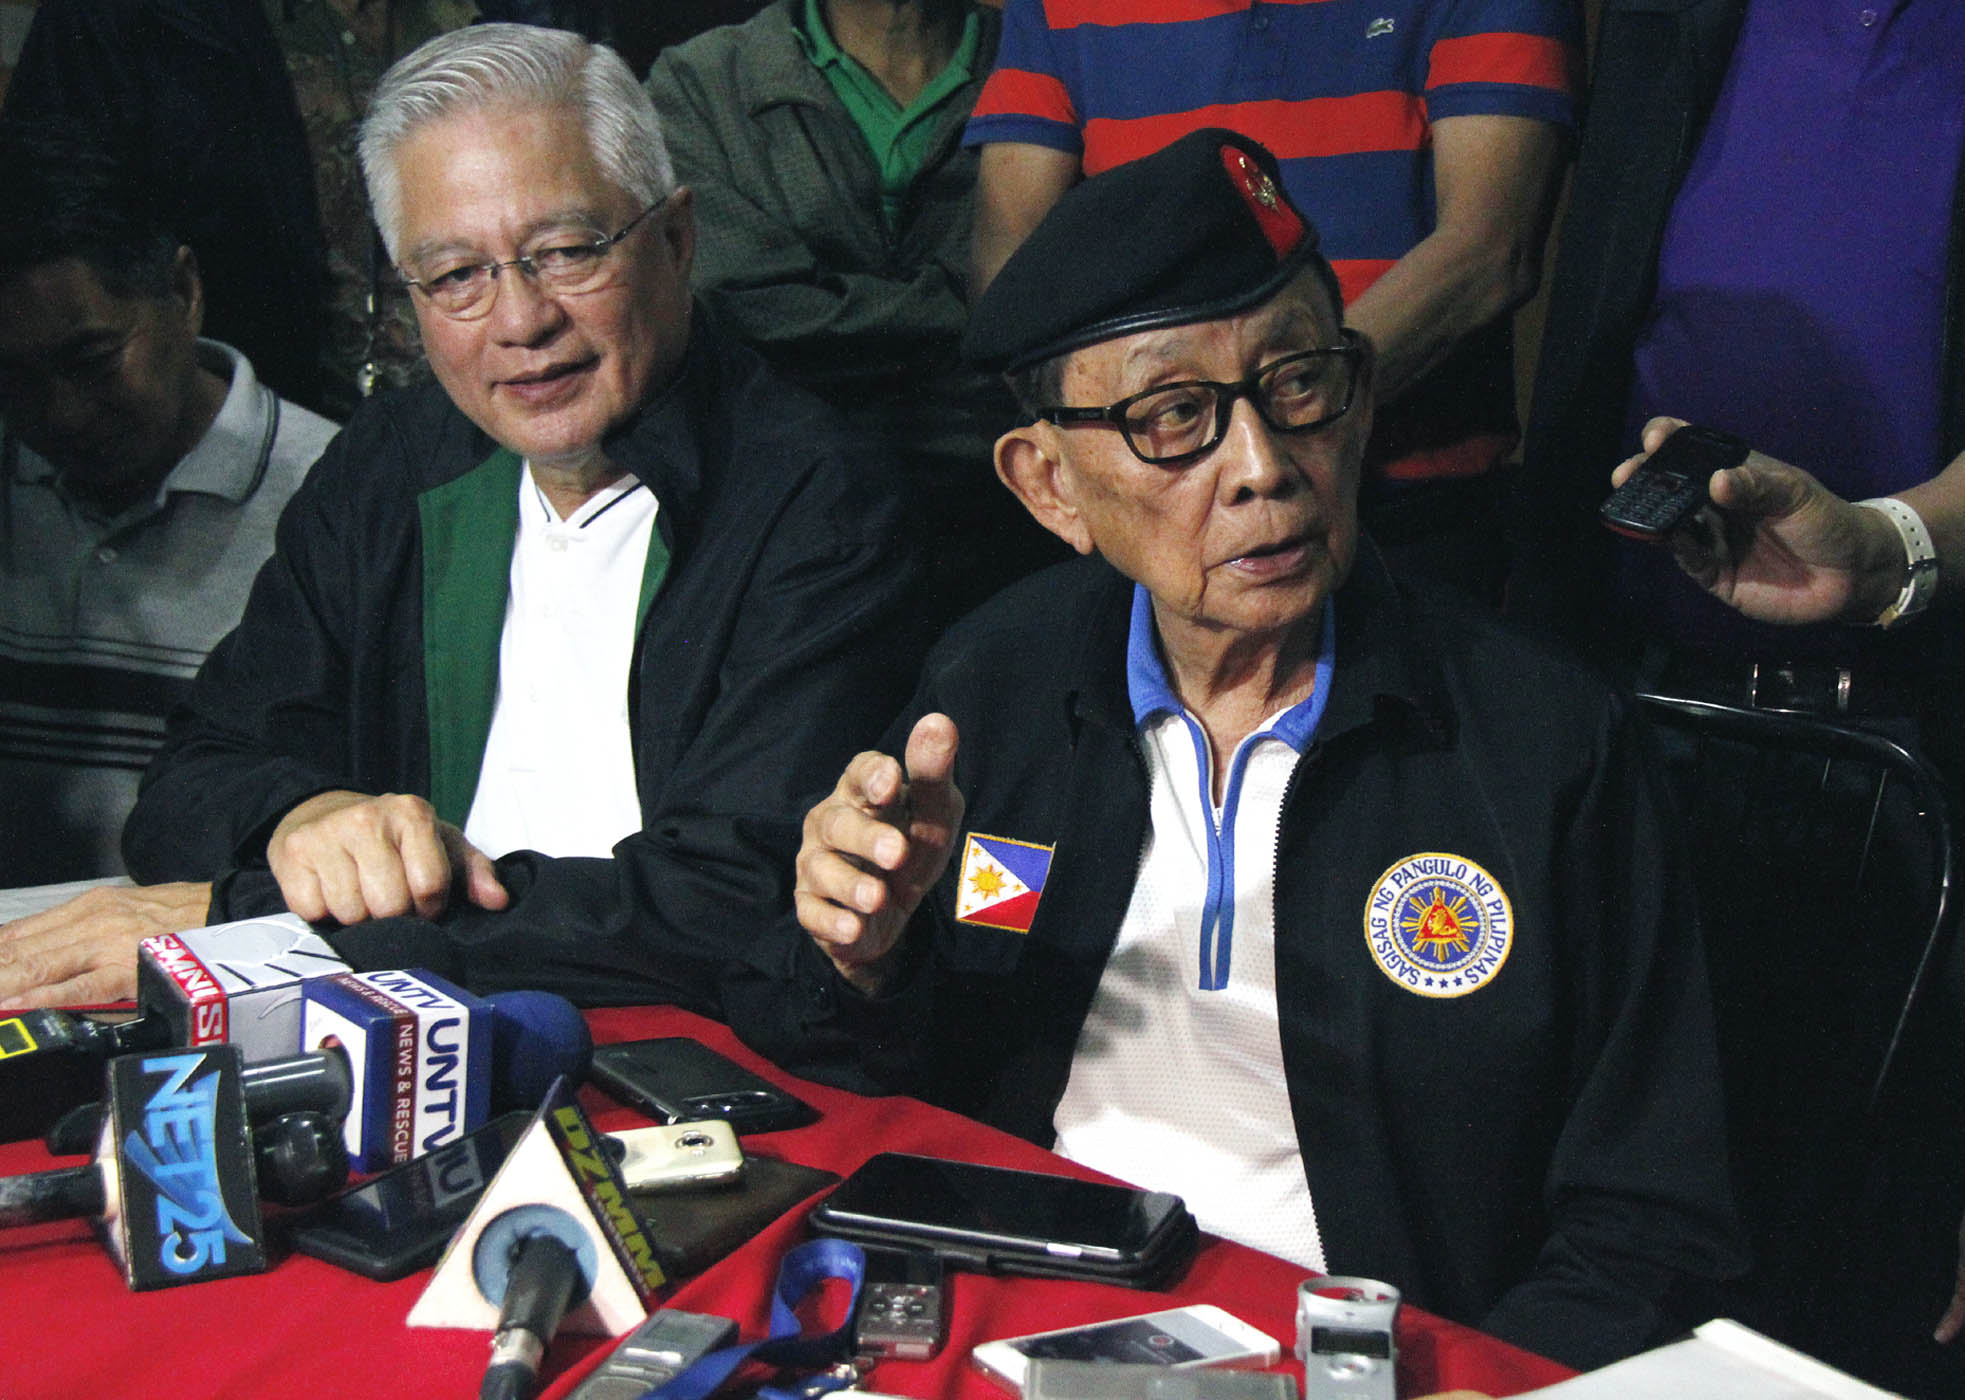 Former President and Special Envoy to China, Fidel V. Ramos (right), in a press conference on Saturday together with former Department of Interior and Local Government Secretary Rafael Alunan III (left) at Camp General Emilio Aguinaldo in Quezon City, says he will report first to his appointing authority, President Rodrigo Roa Duterte, before planning to go to Beijing, China for official talks. The former president met with ranking Chinese officials in Hong Kong last Aug. 10 to 11. (PNA photo by Joey O. Razon)